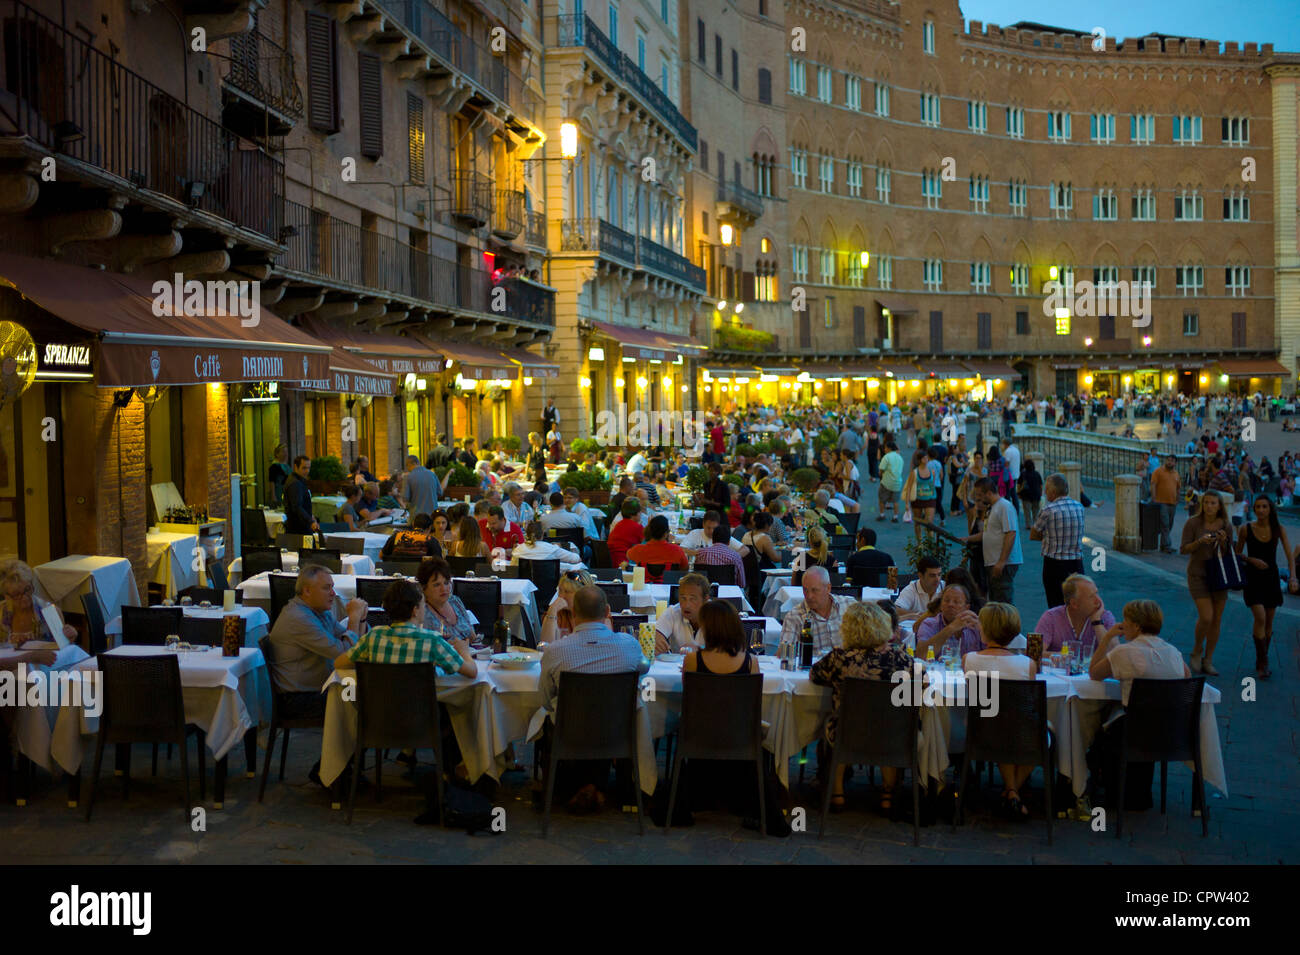 Diners eating al fresco at Nannini bar and restaurant in Piazza del Campo, Siena, Italy - Stock Image